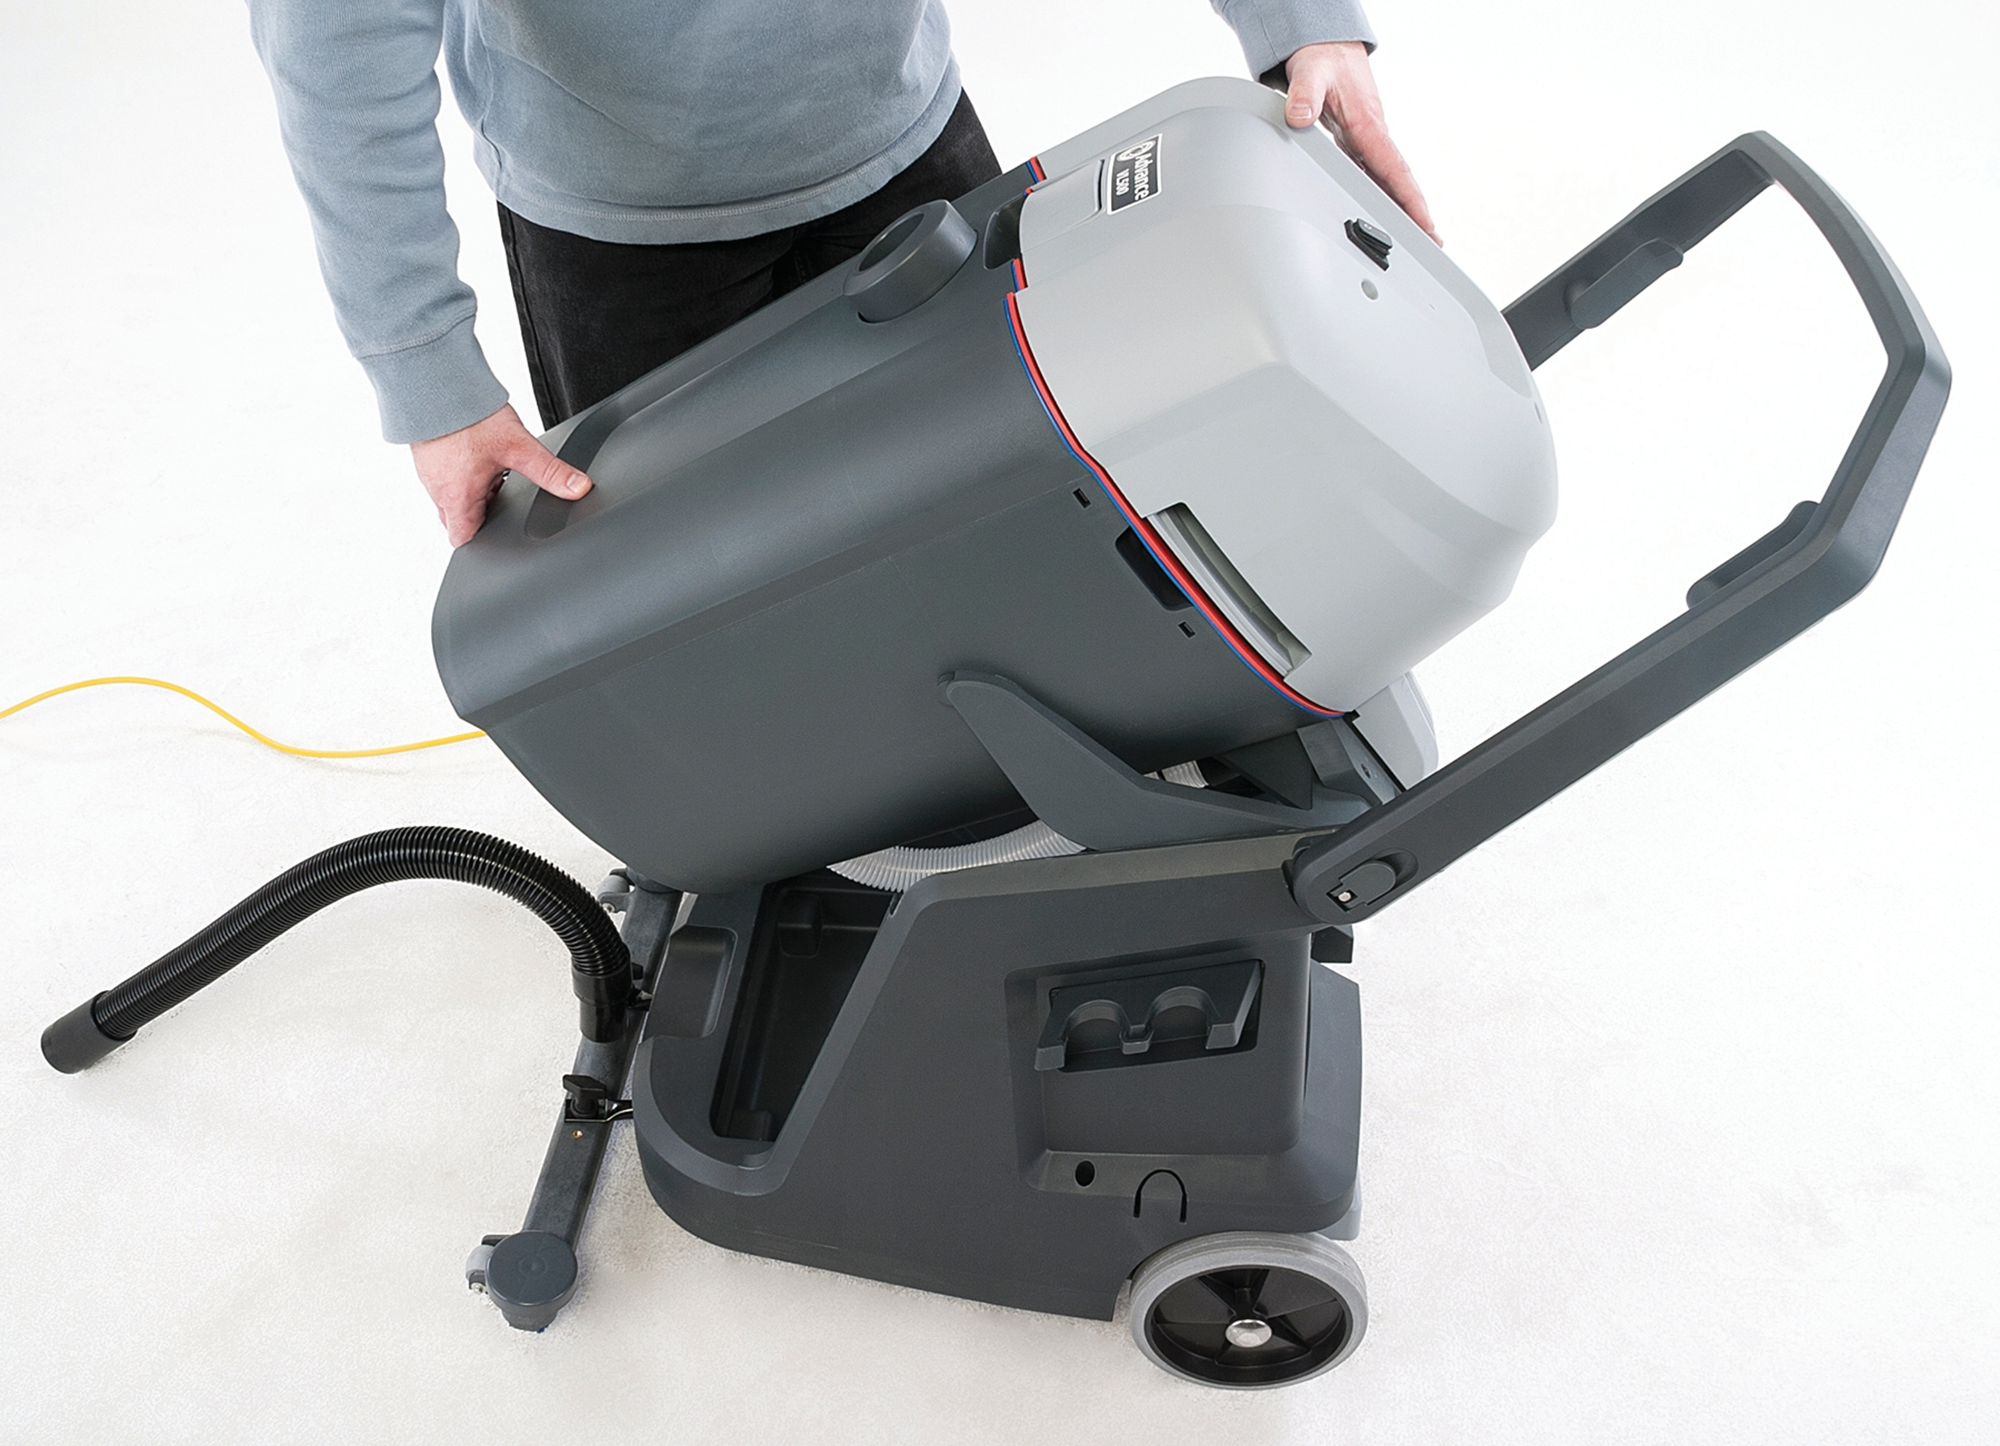 Product, Vacuum cleaners, Commercial vacuum cleaners, Wet and dry vacuum cleaners, Nilfisk, VL500-35 EDF 120V/60HZ US